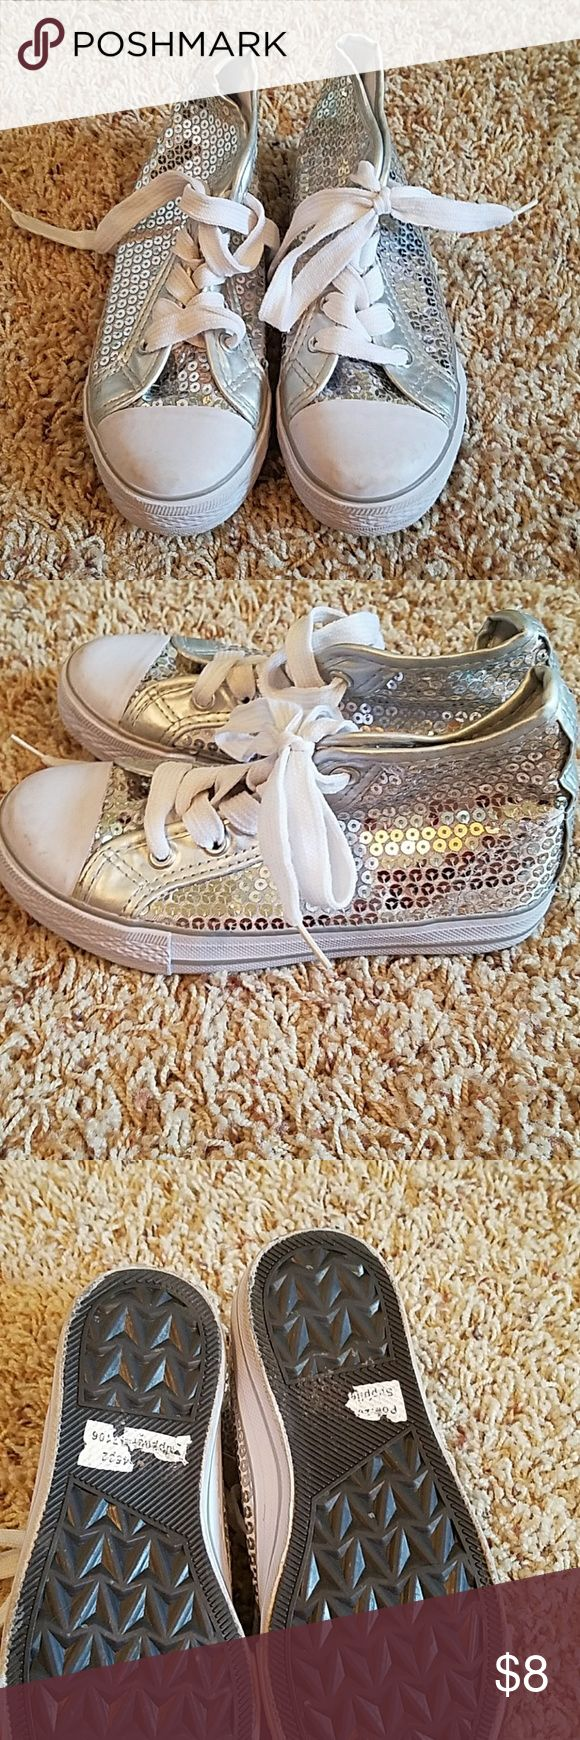 Sequined Glitter Tennis Shoes like converse Perfect condition. Worn once for a hip hop dance at recital. Balera brand. Sz 13 little girls Shoes Sneakers